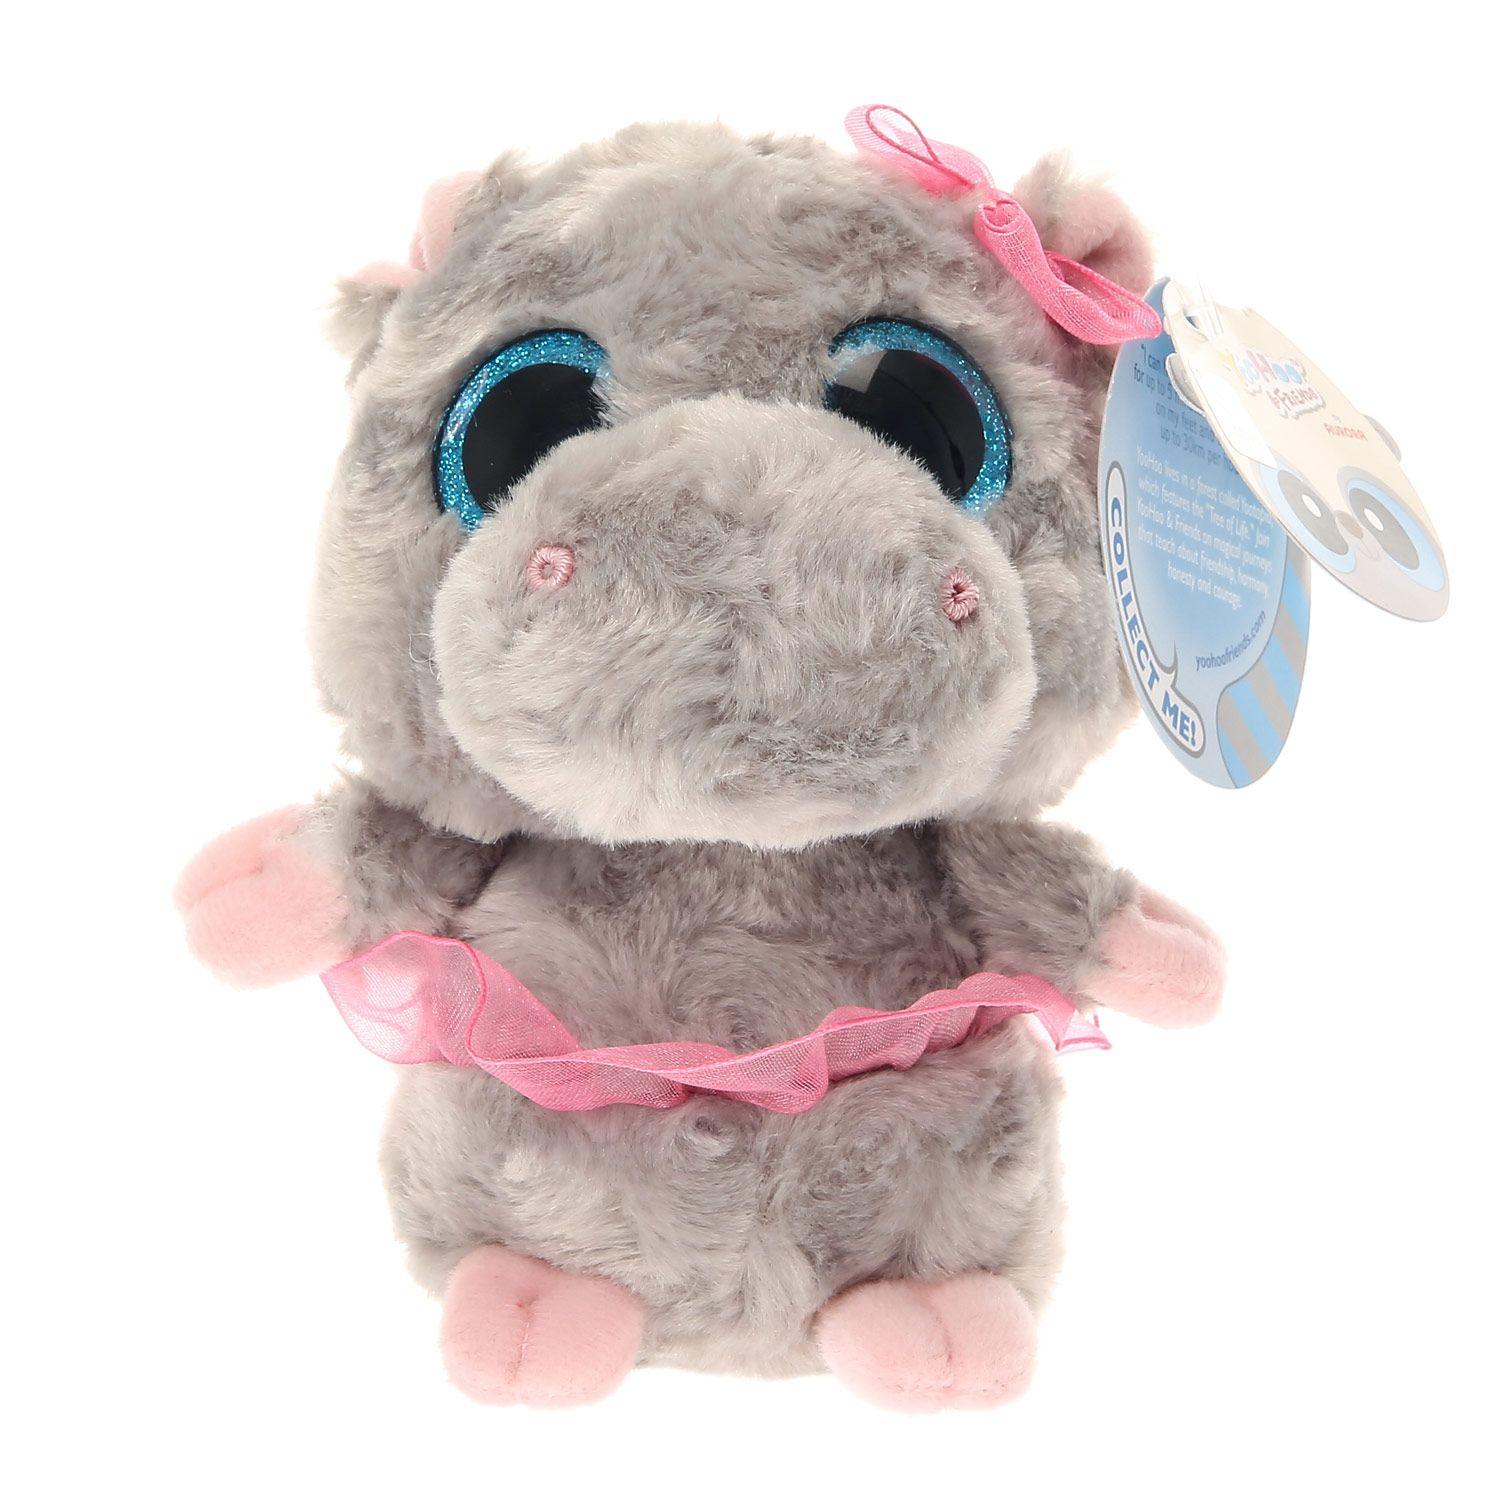 P Tutu the hippo is a must have super cute addition to any TY Beanie Boo  collection. She has a soft grey plush feel with a pink tutu and bow  attached. 24adea0c6520